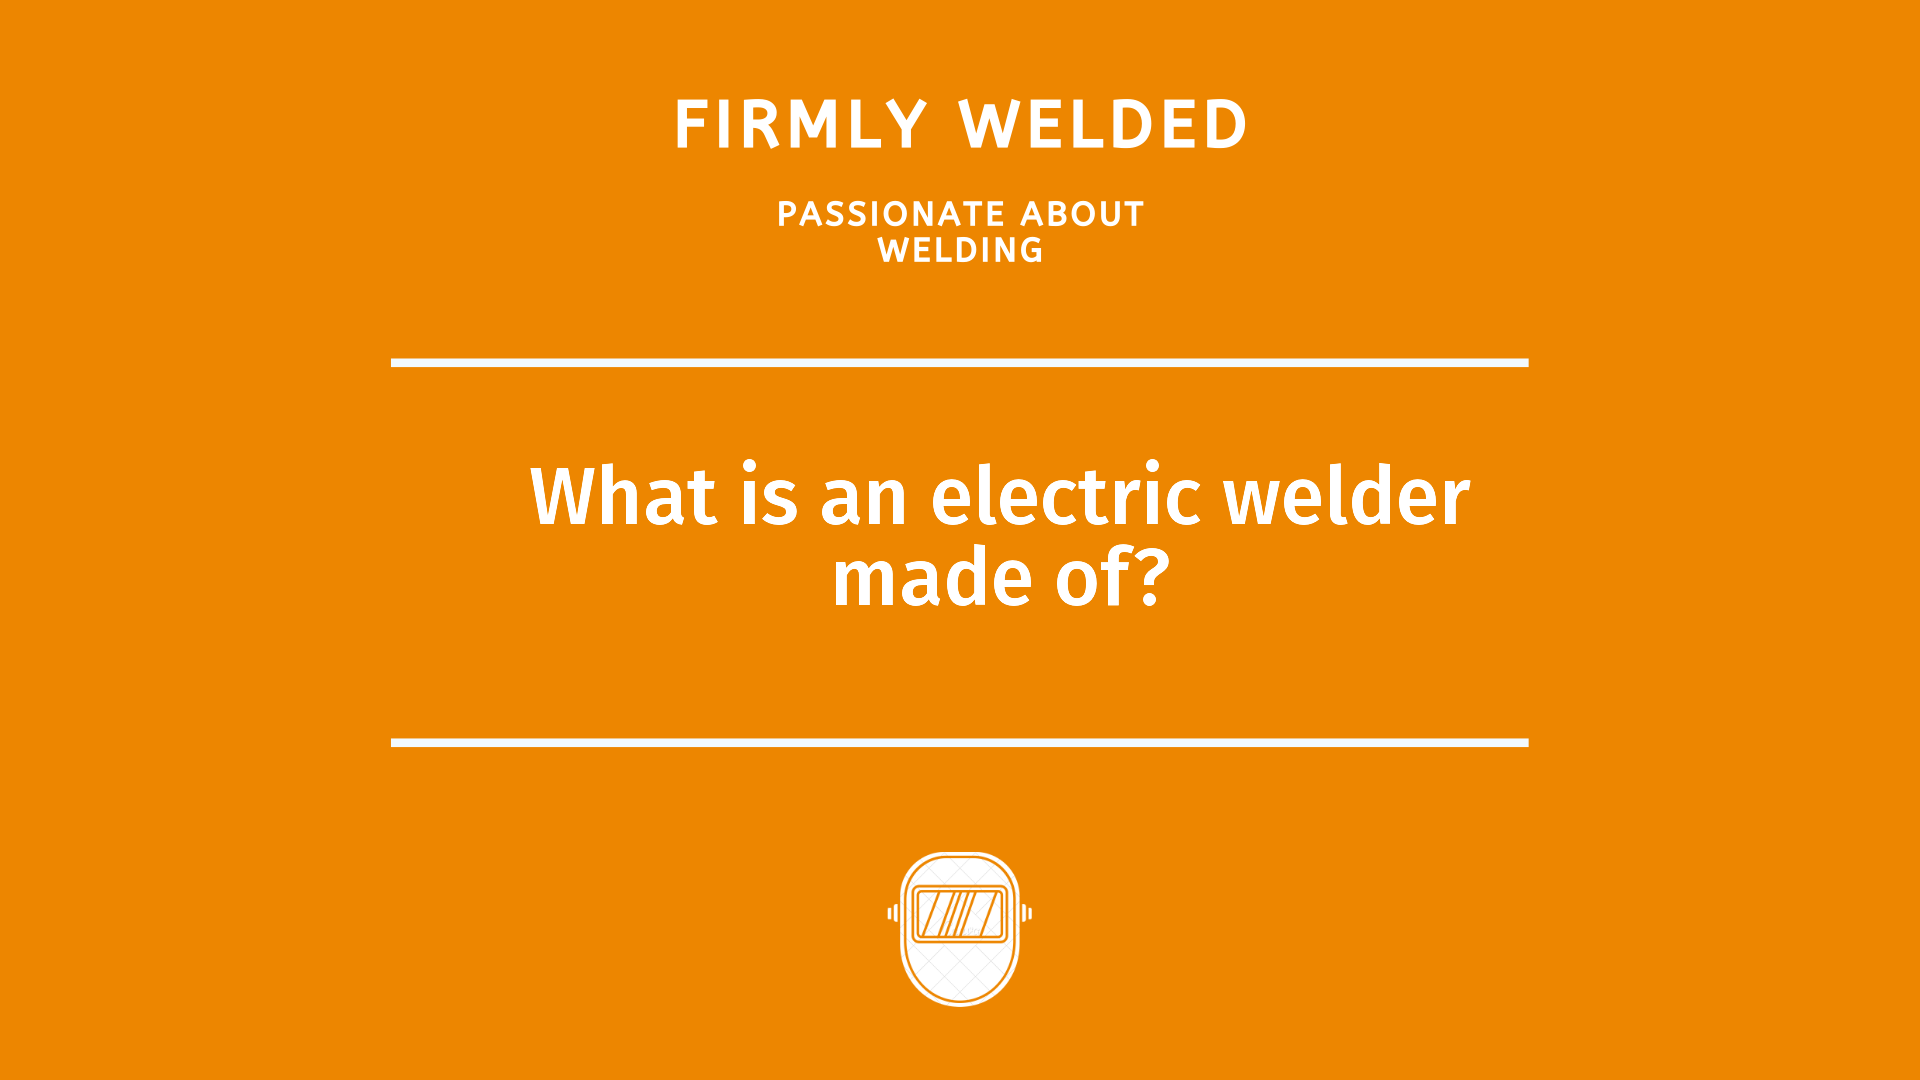 What is an electric welder made of?